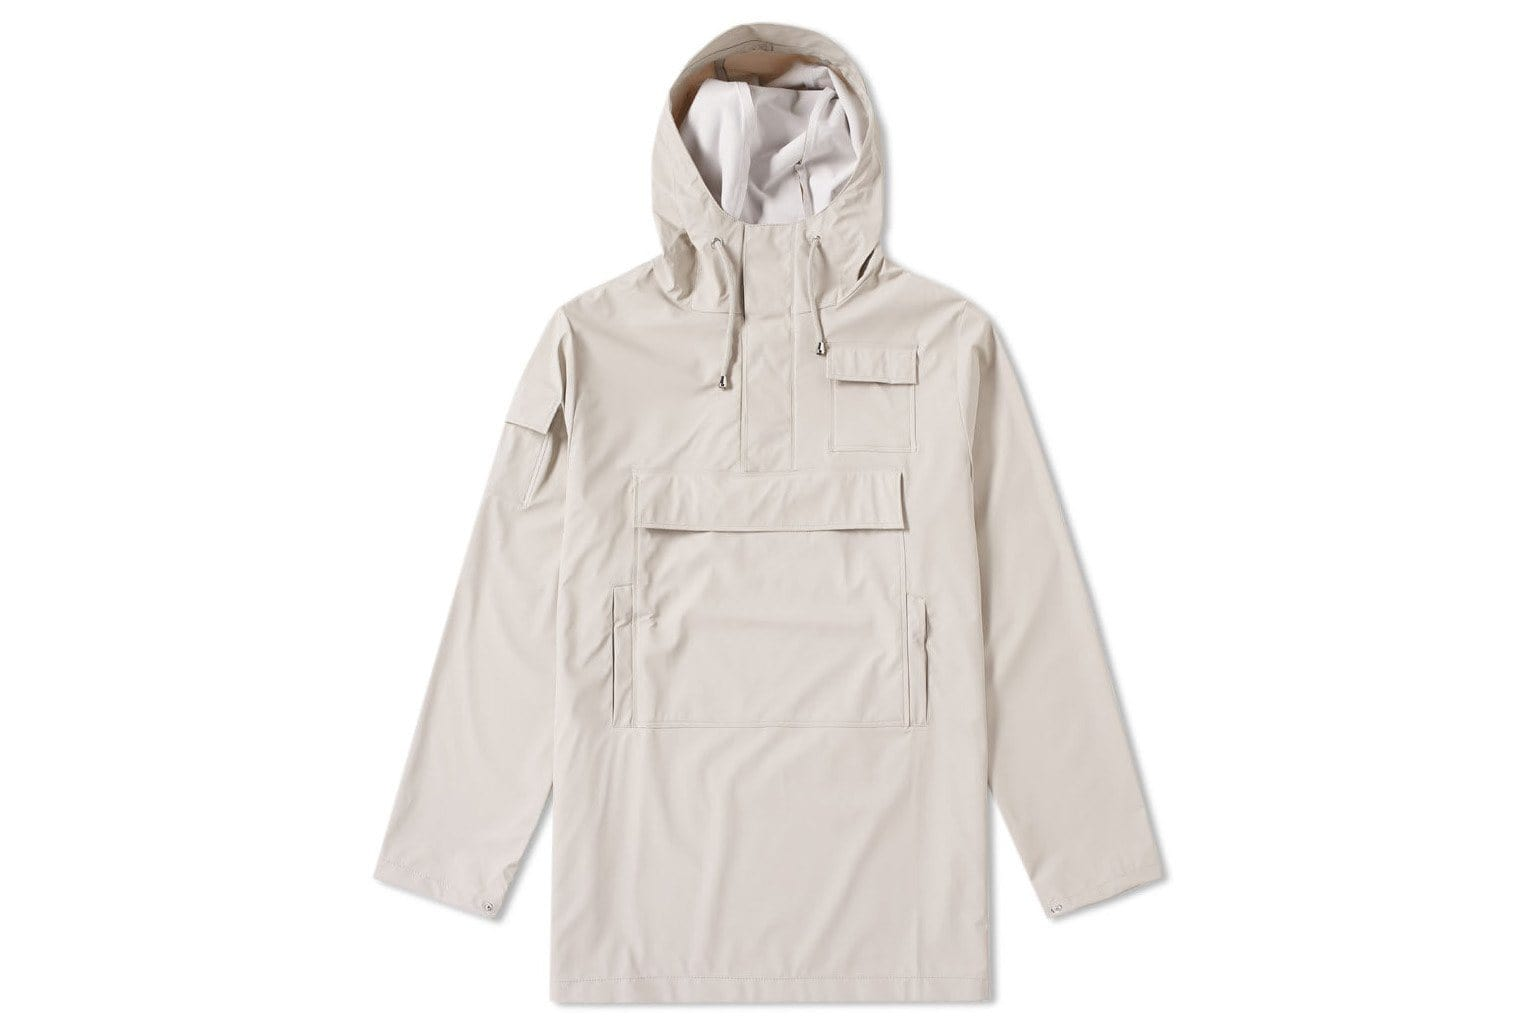 Rains pullover jacket with pockets in the color moon.